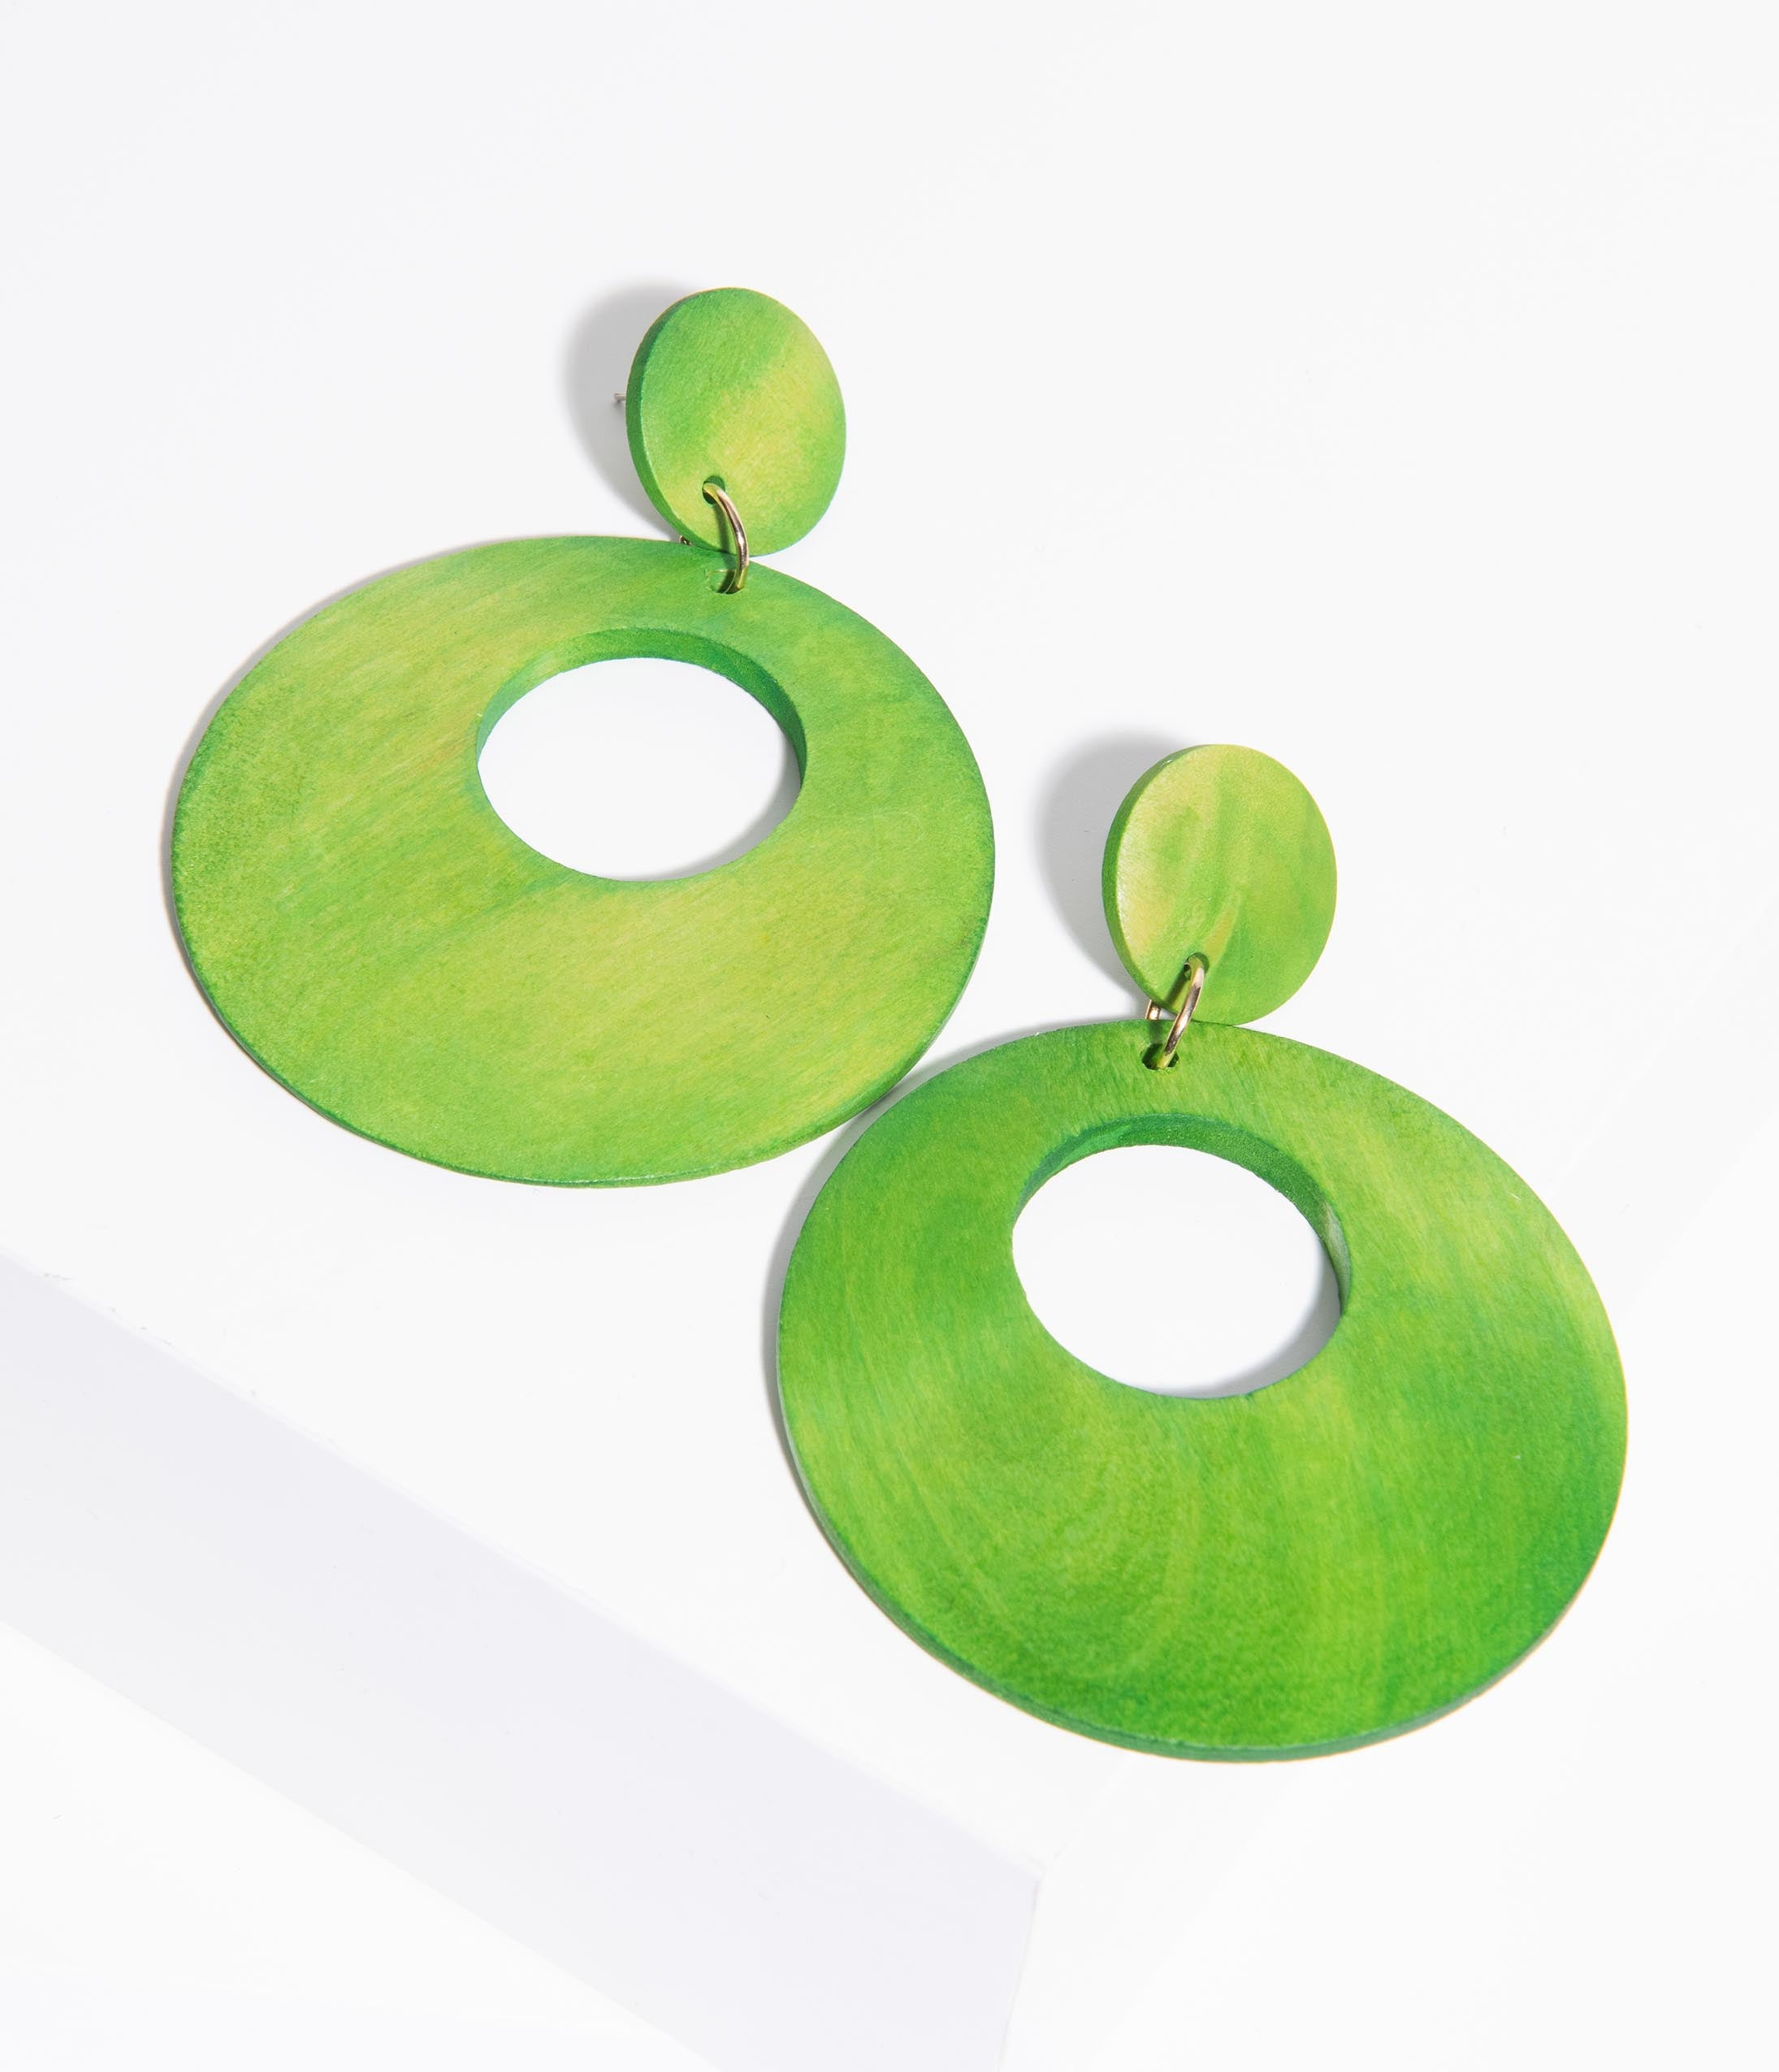 1960s Jewelry Styles and Trends to Wear 1960S Green Wooden Circle Drop Earring $16.00 AT vintagedancer.com